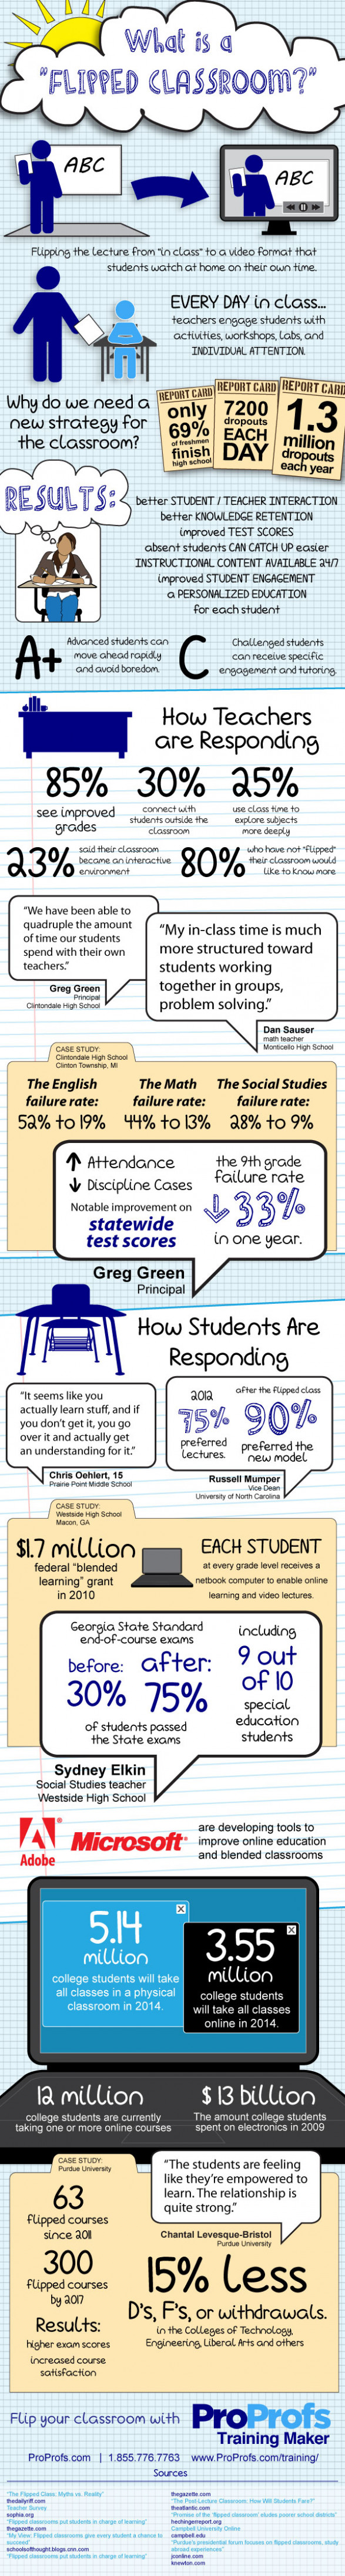 What is a flipped Classroom